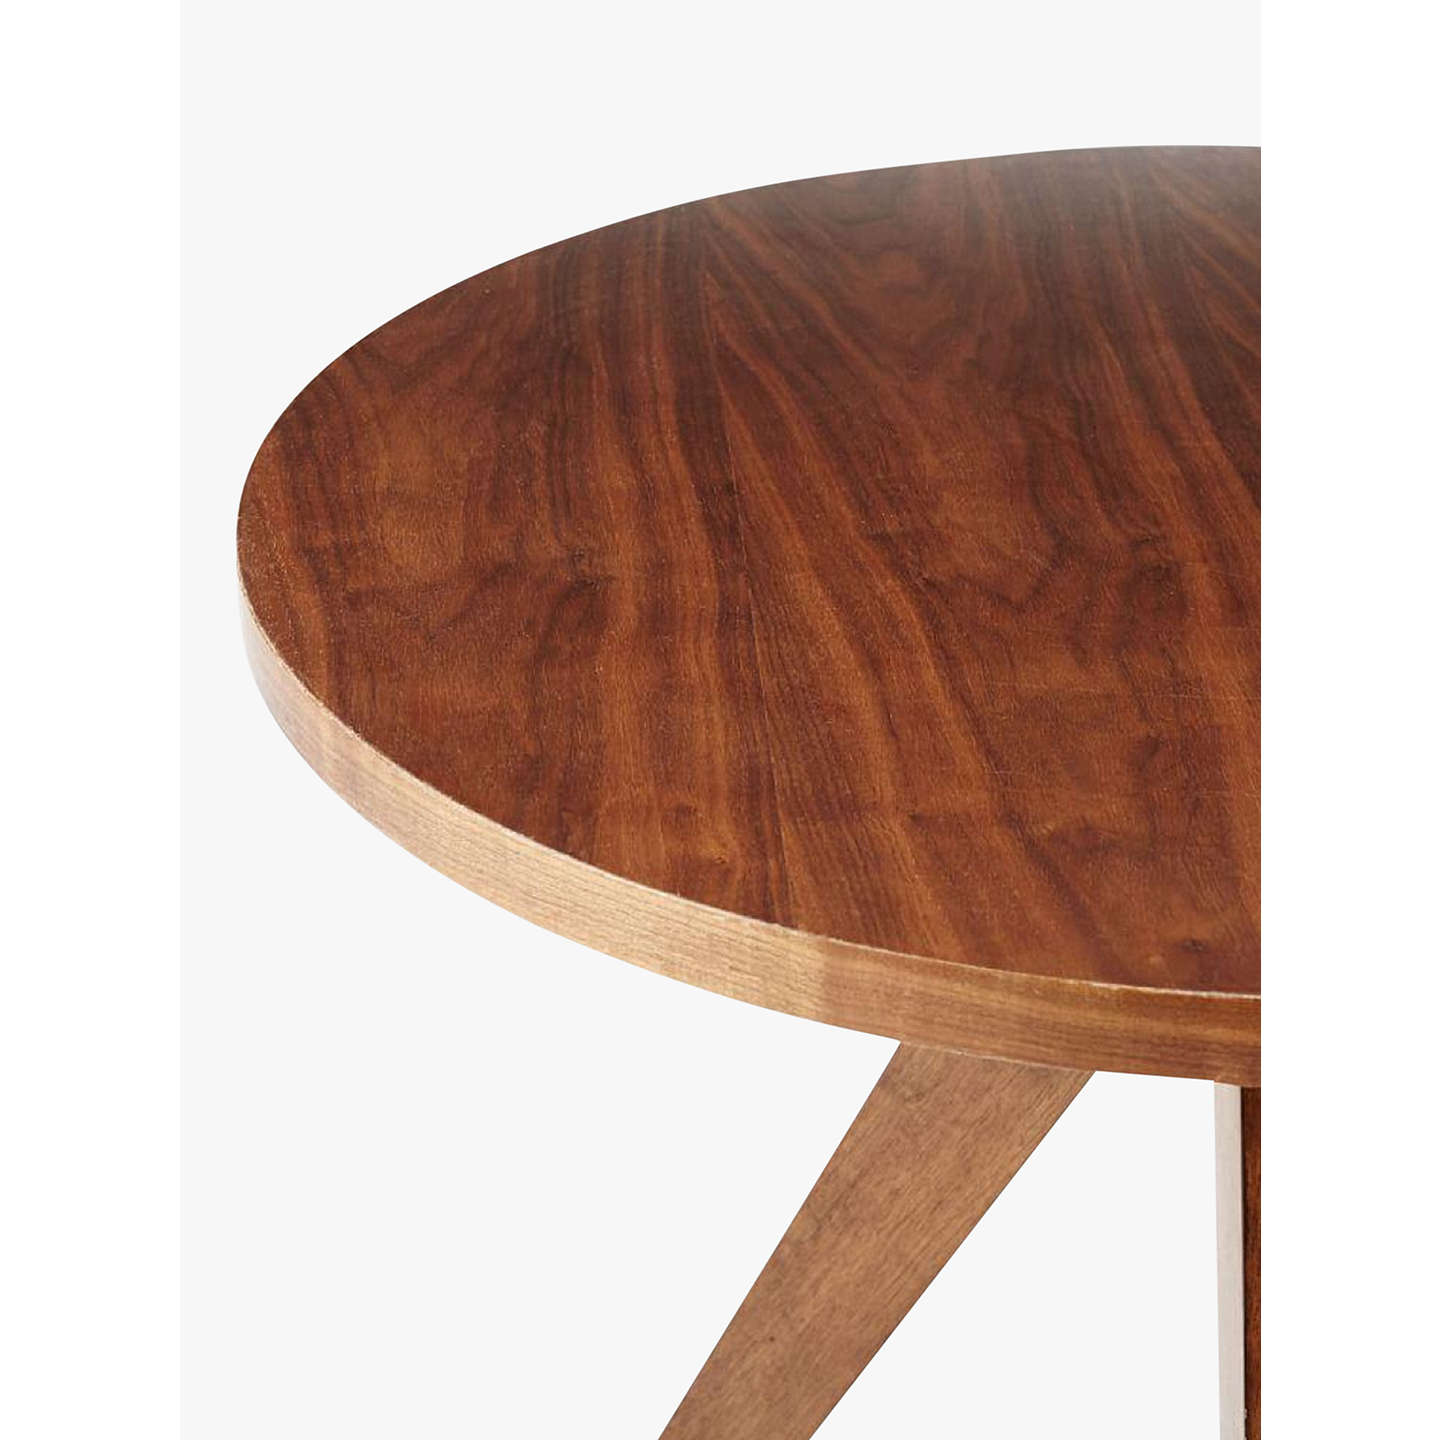 West elm tripod round 2 seater dining table at john lewis for 2 seater dining table